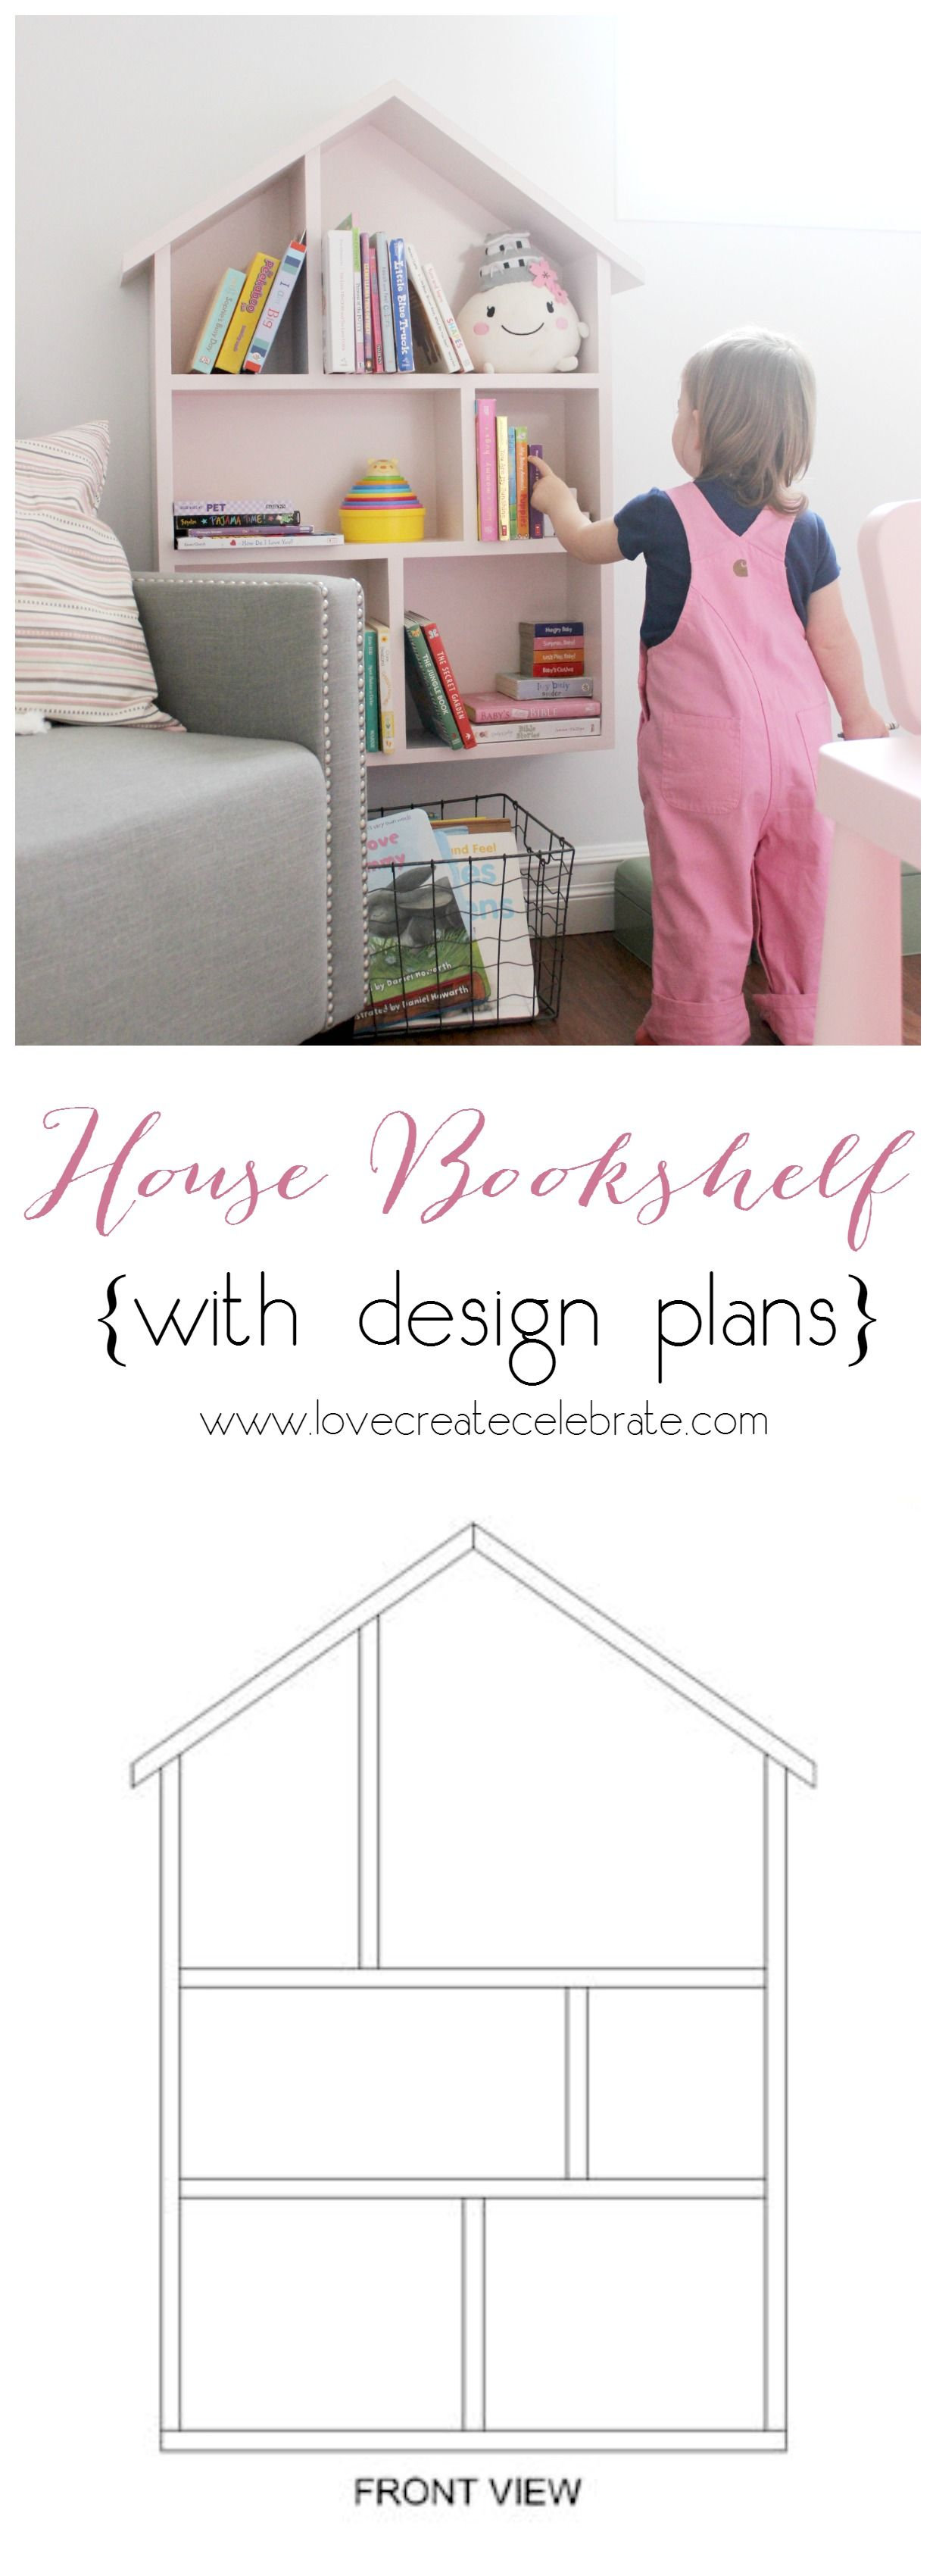 Photo of House Bookshelf – Love Create Celebrate